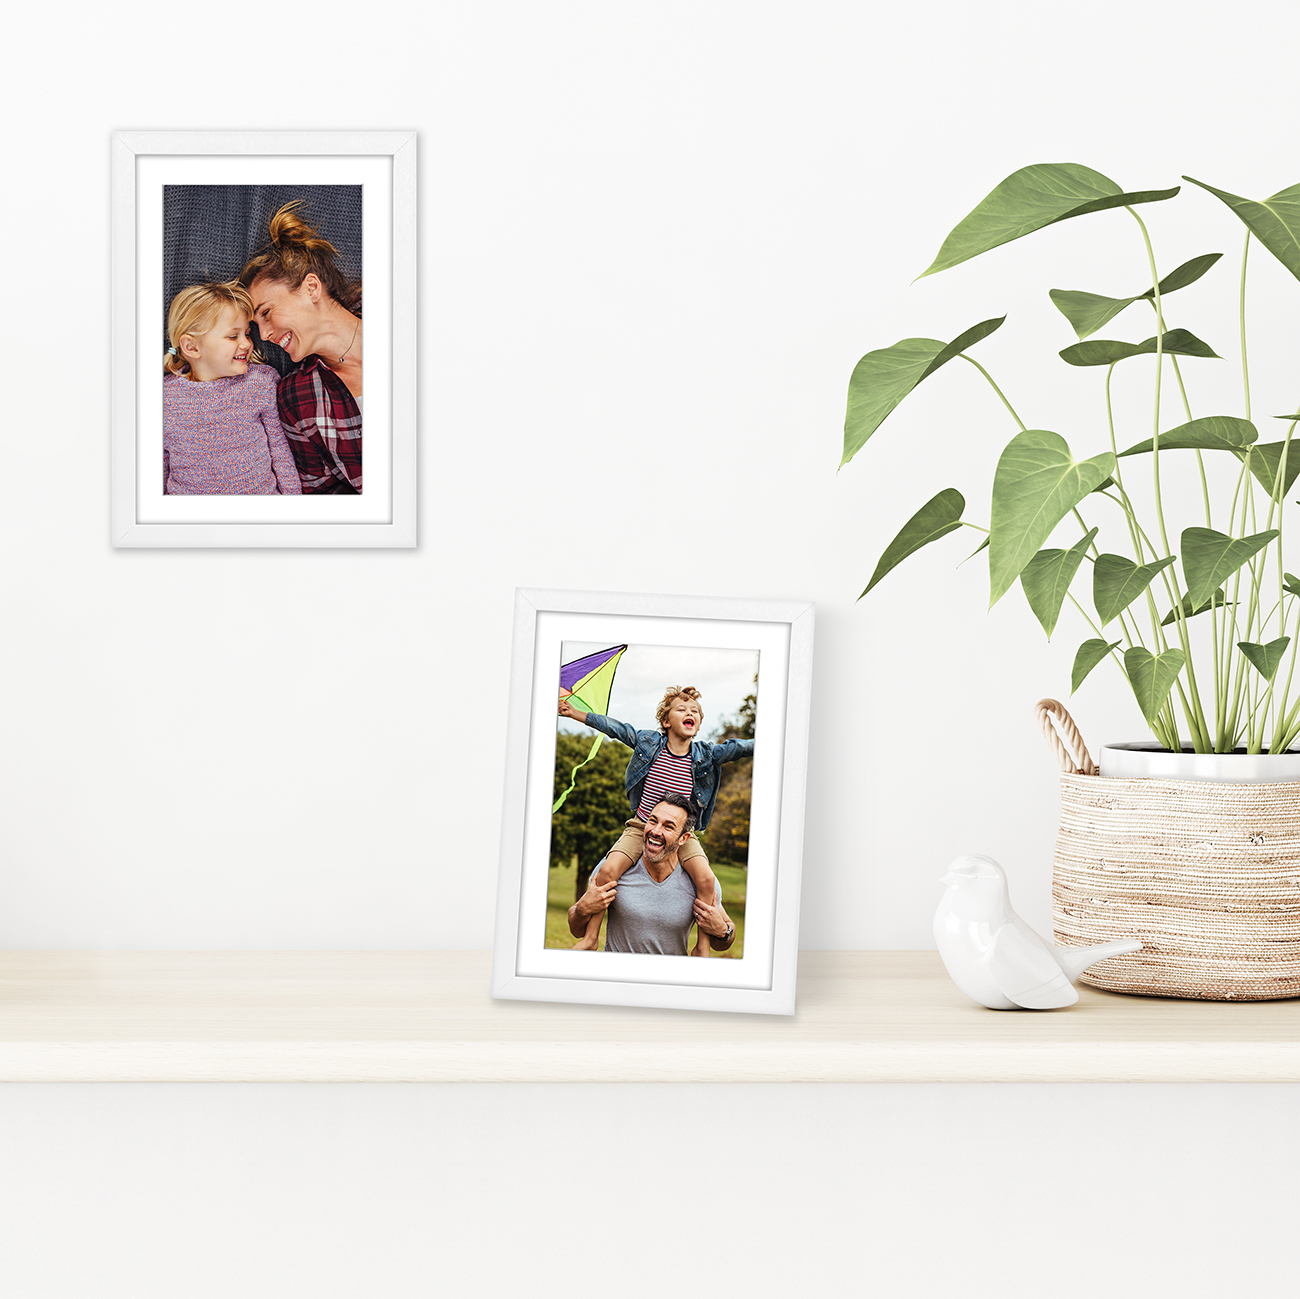 miniature 90 - Americanflat Thin Picture Frame 5x7 8x10 11x14 8.5x11 Wall Tabletop Pick Color